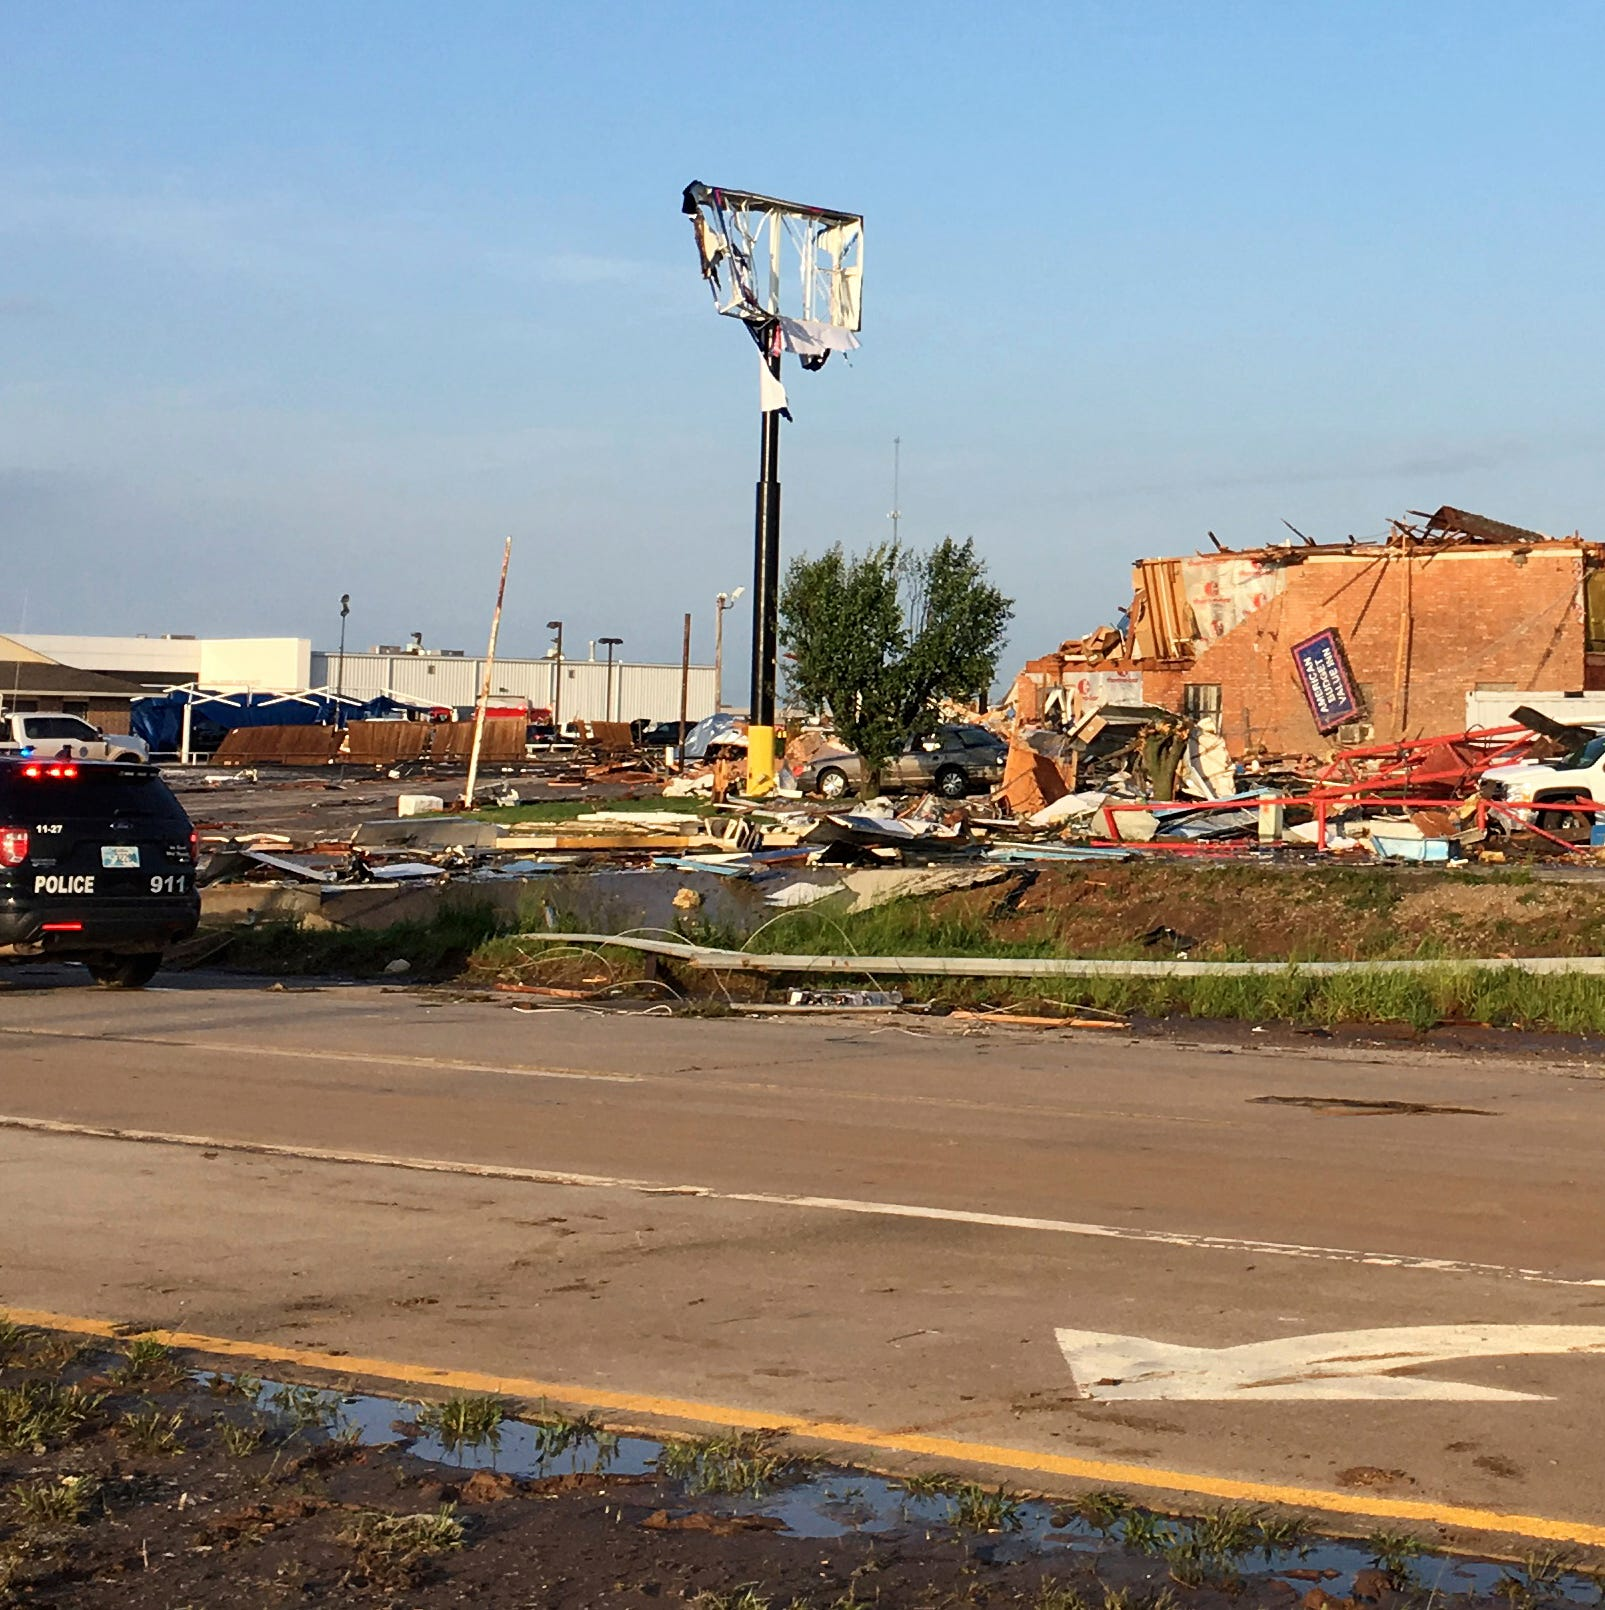 'Decimated': 2 dead, search underway for missing after Oklahoma tornado